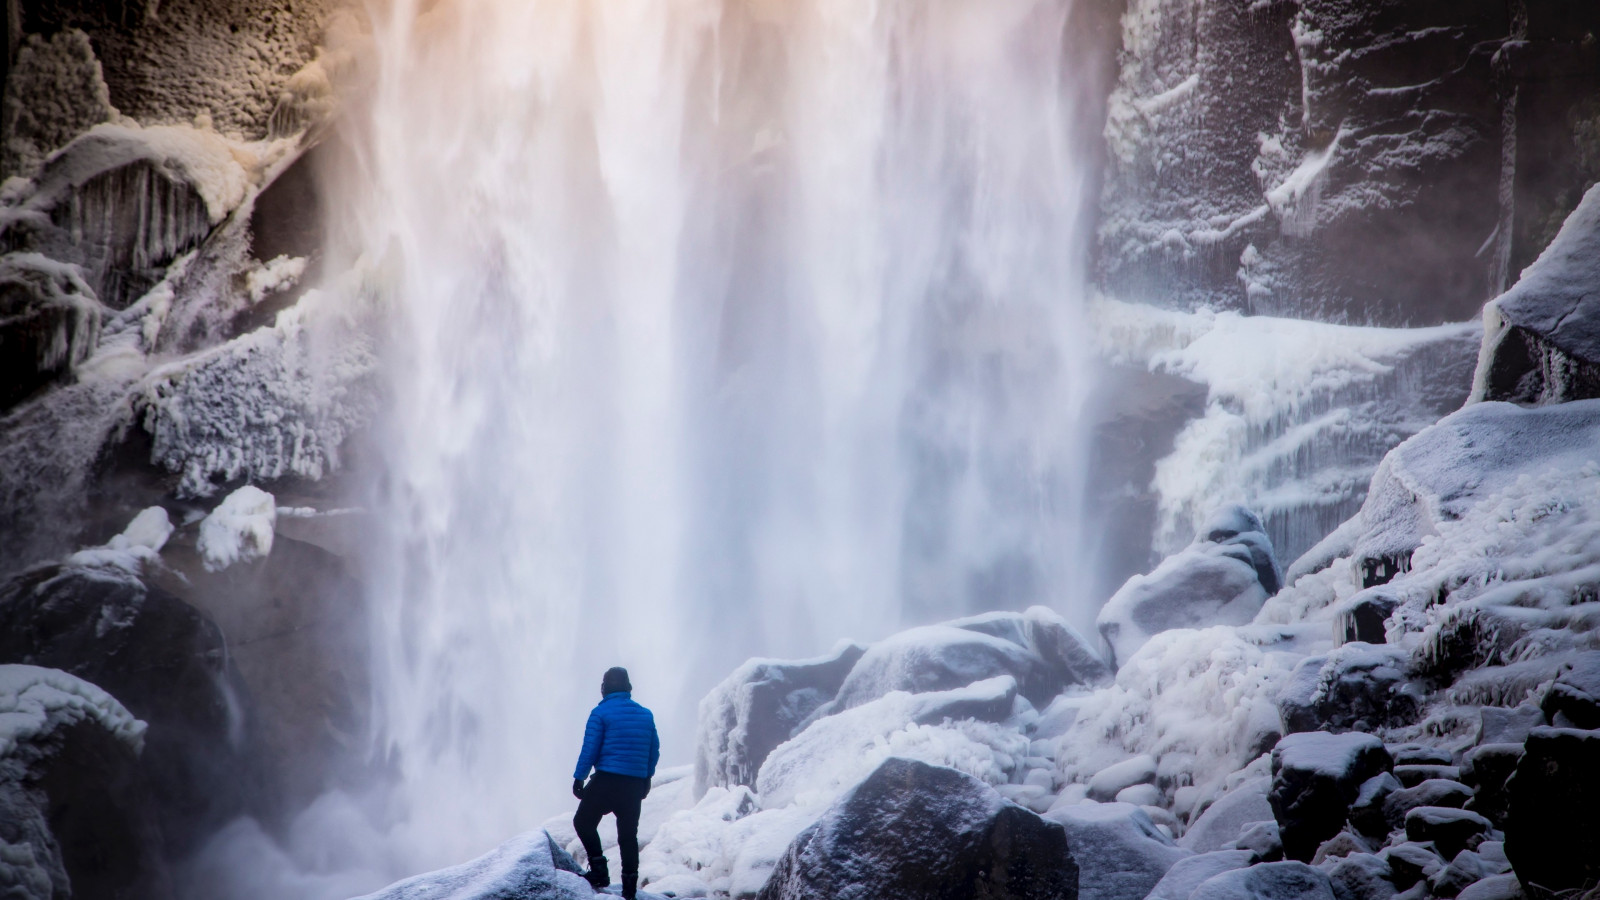 Frozen waterfall in Yosemite Valley wallpaper 1600x900